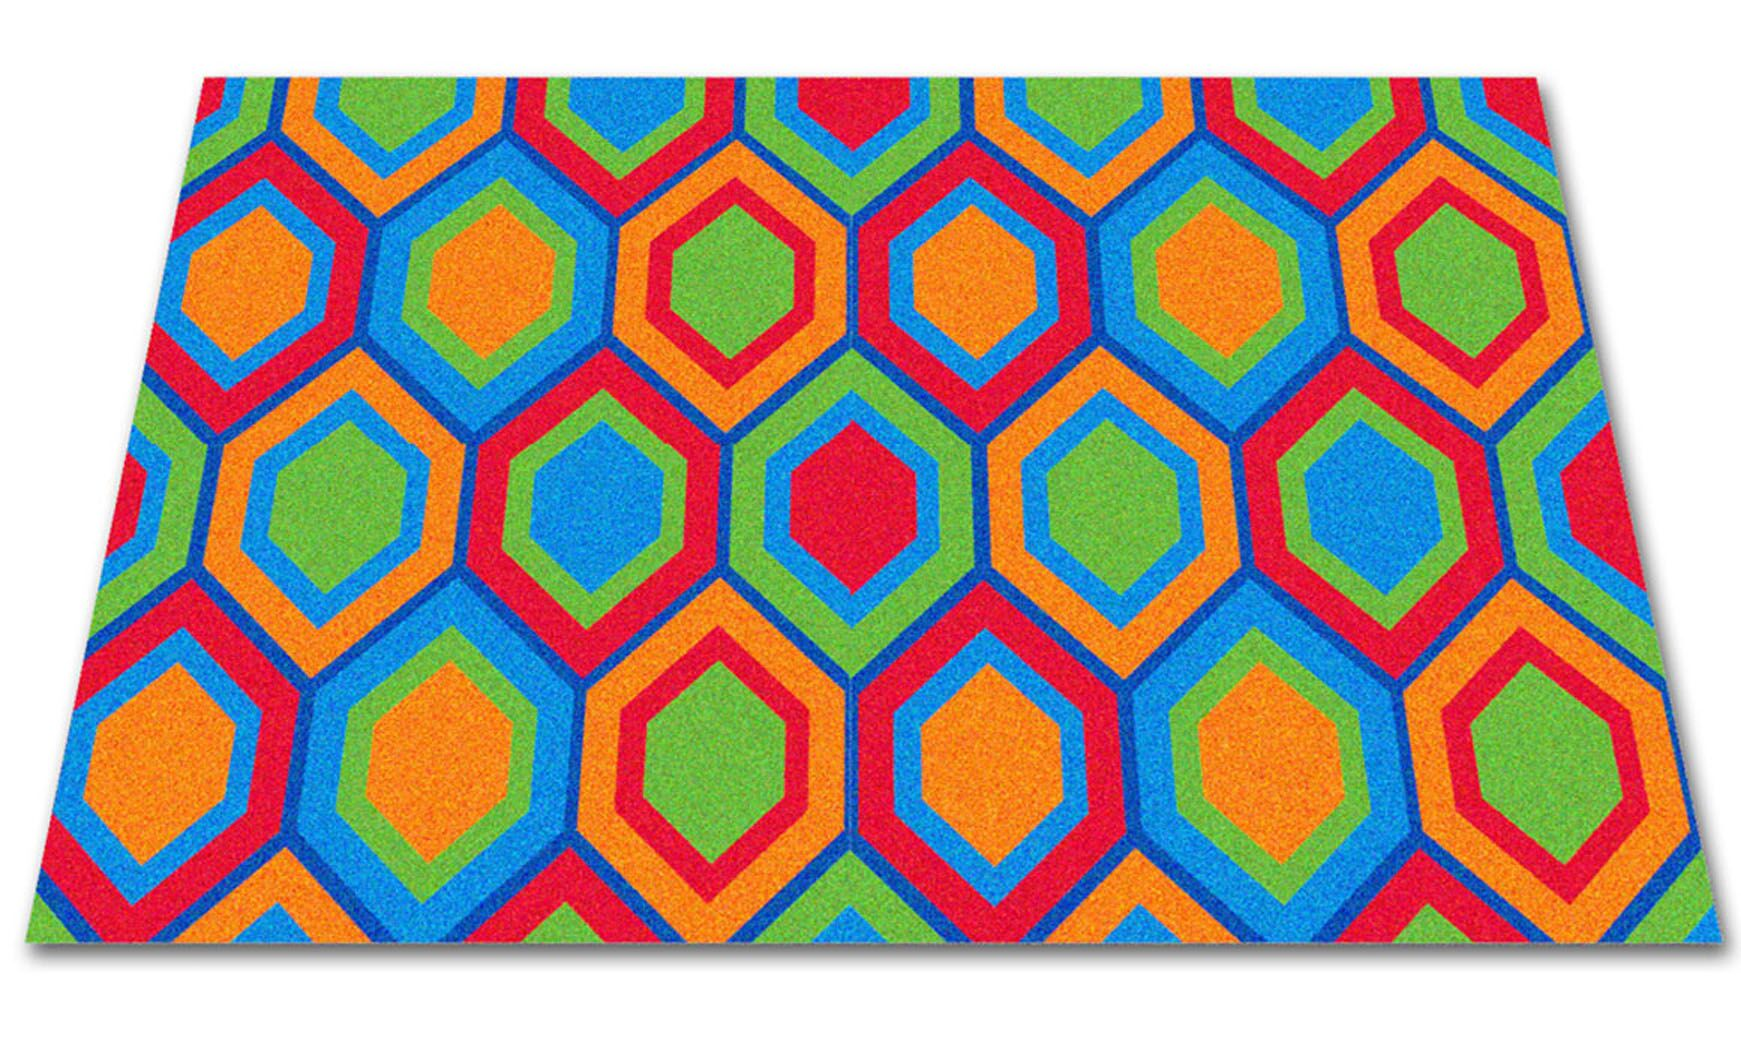 Sitting Hexagons Area Rug Rug Size: Square 12'